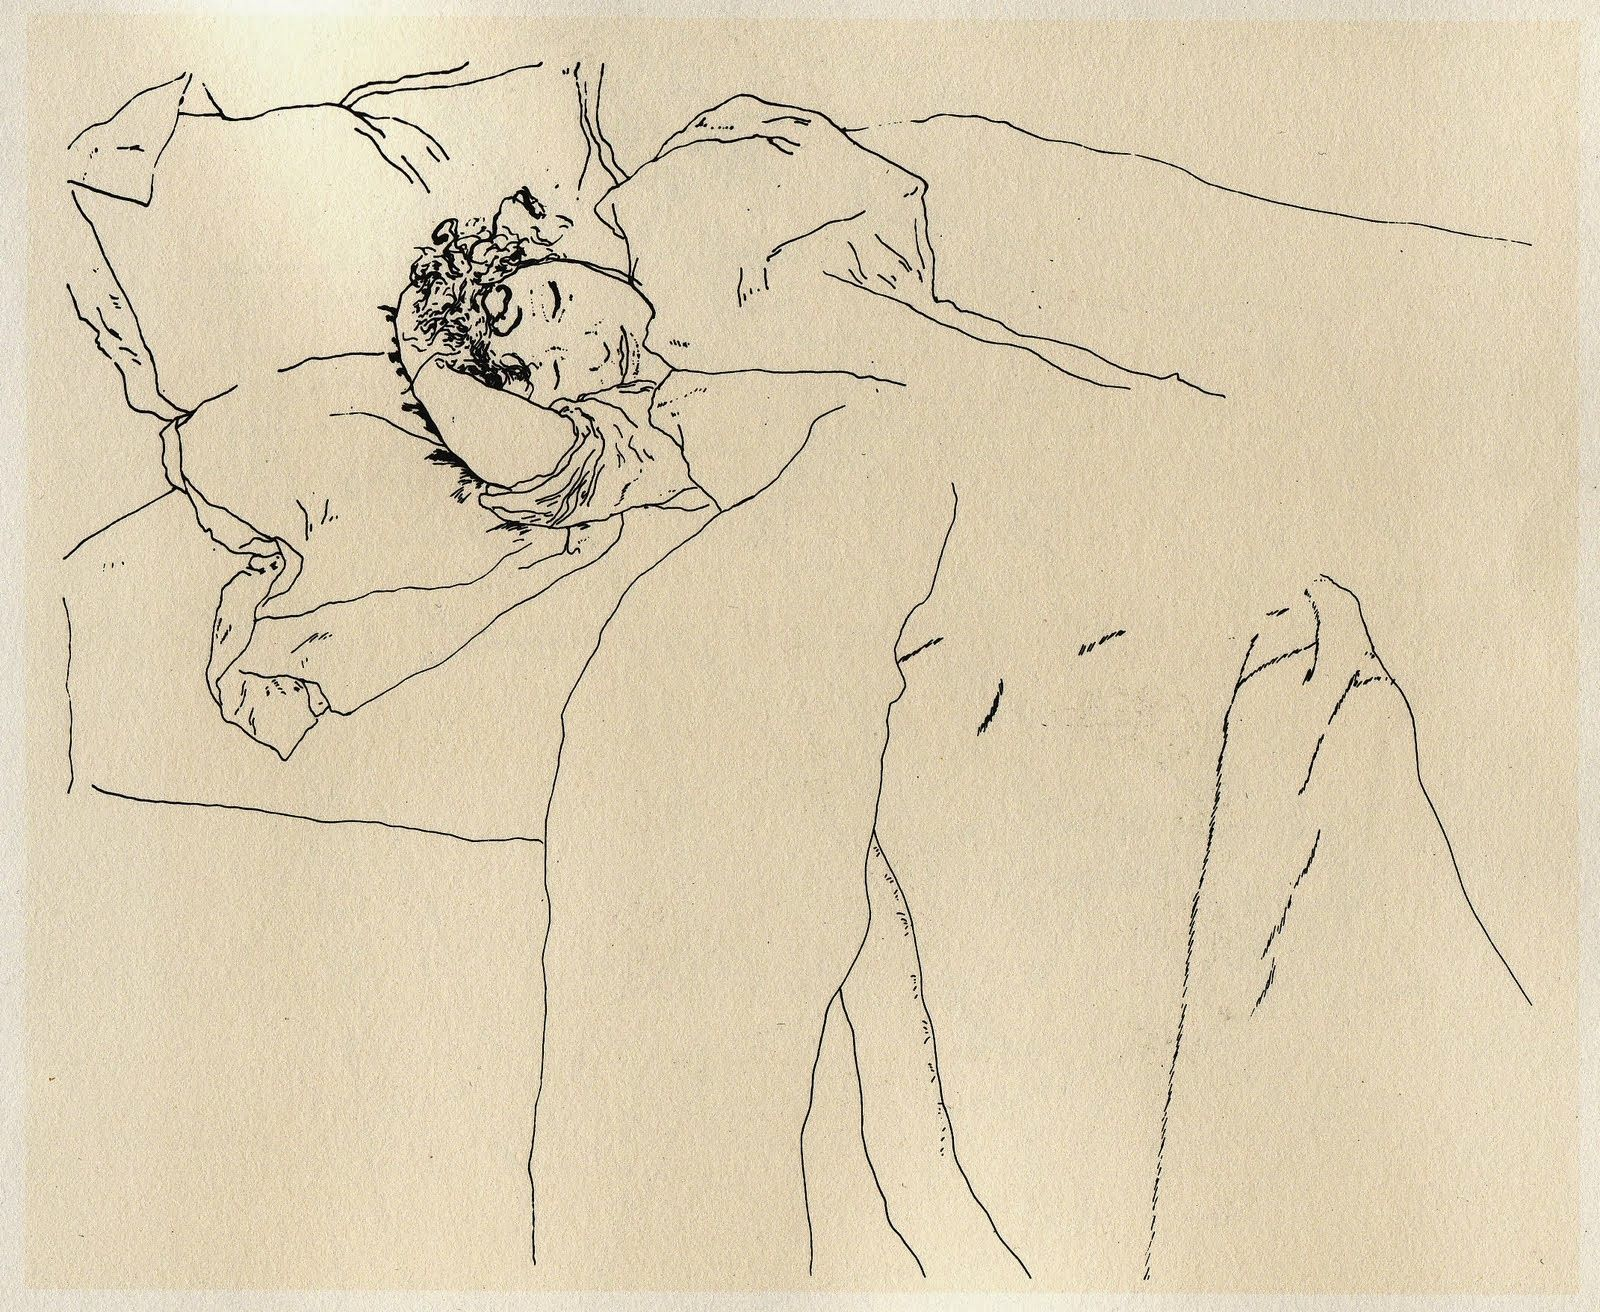 Contour Line Drawing Picasso : Berlin drawing room contour lines from matisse to david hockney